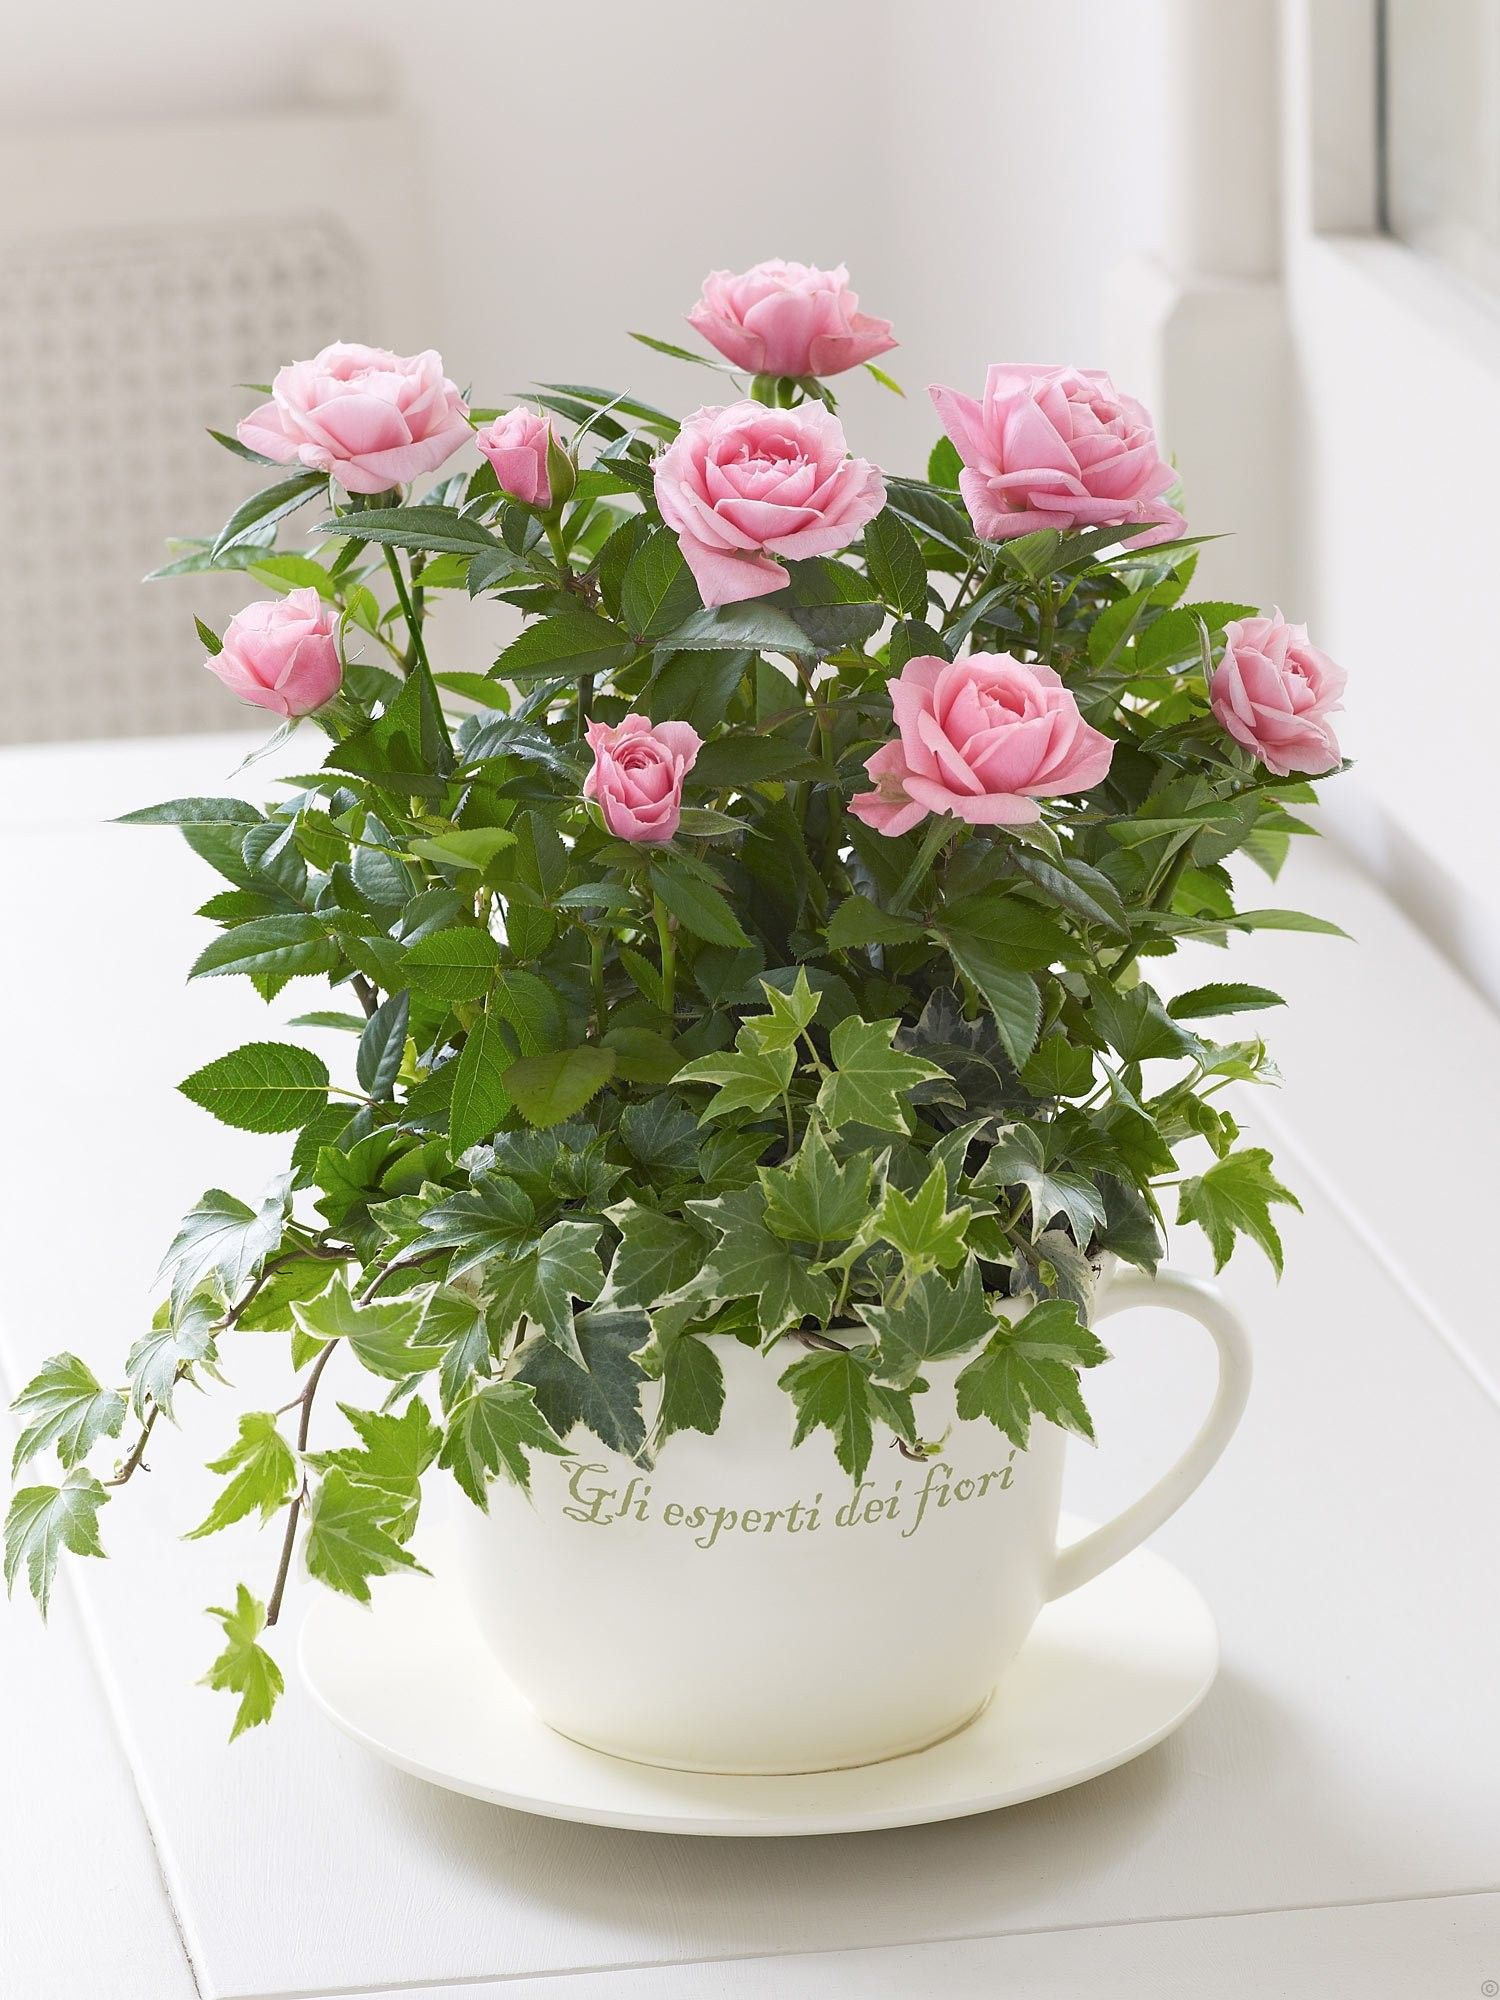 Could Place Miniture Rose In Pot In Cup Then Add Greenery